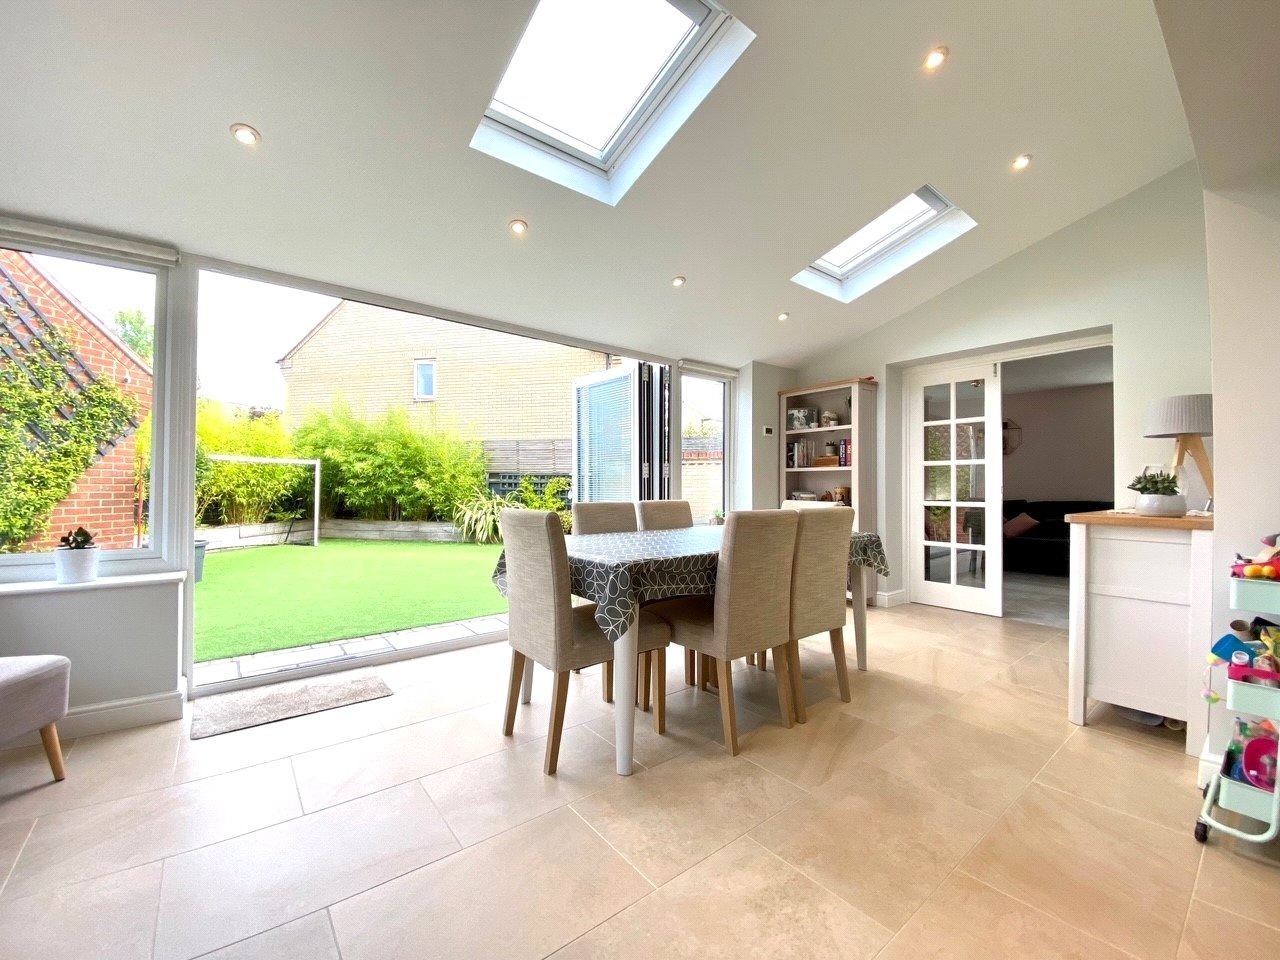 4 bed detached house for sale in Lannesbury Crescent, St. Neots  - Property Image 8